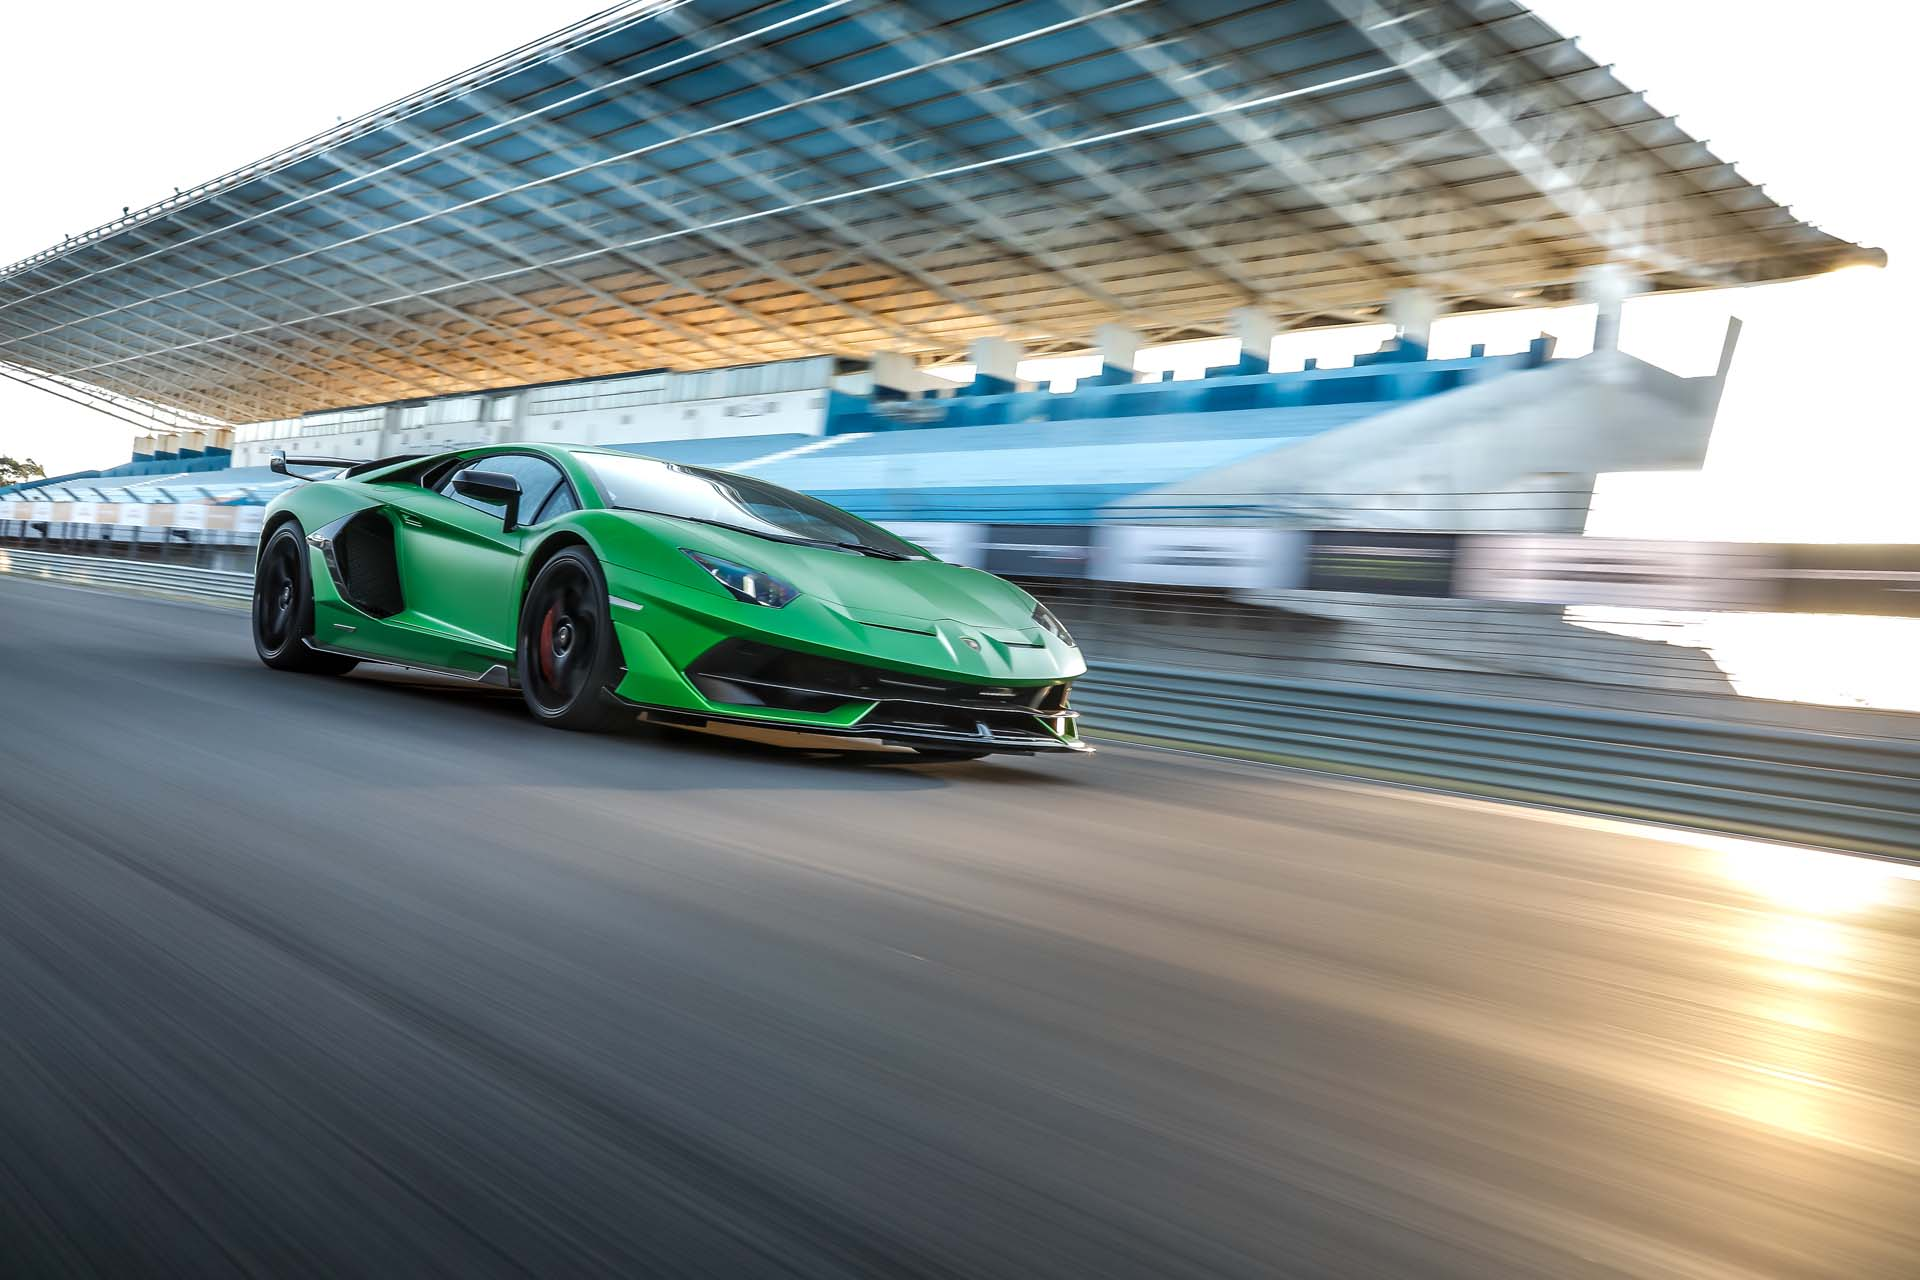 2019 Lamborghini Aventador SVJ Front Three-Quarter Wallpapers #25 of 241